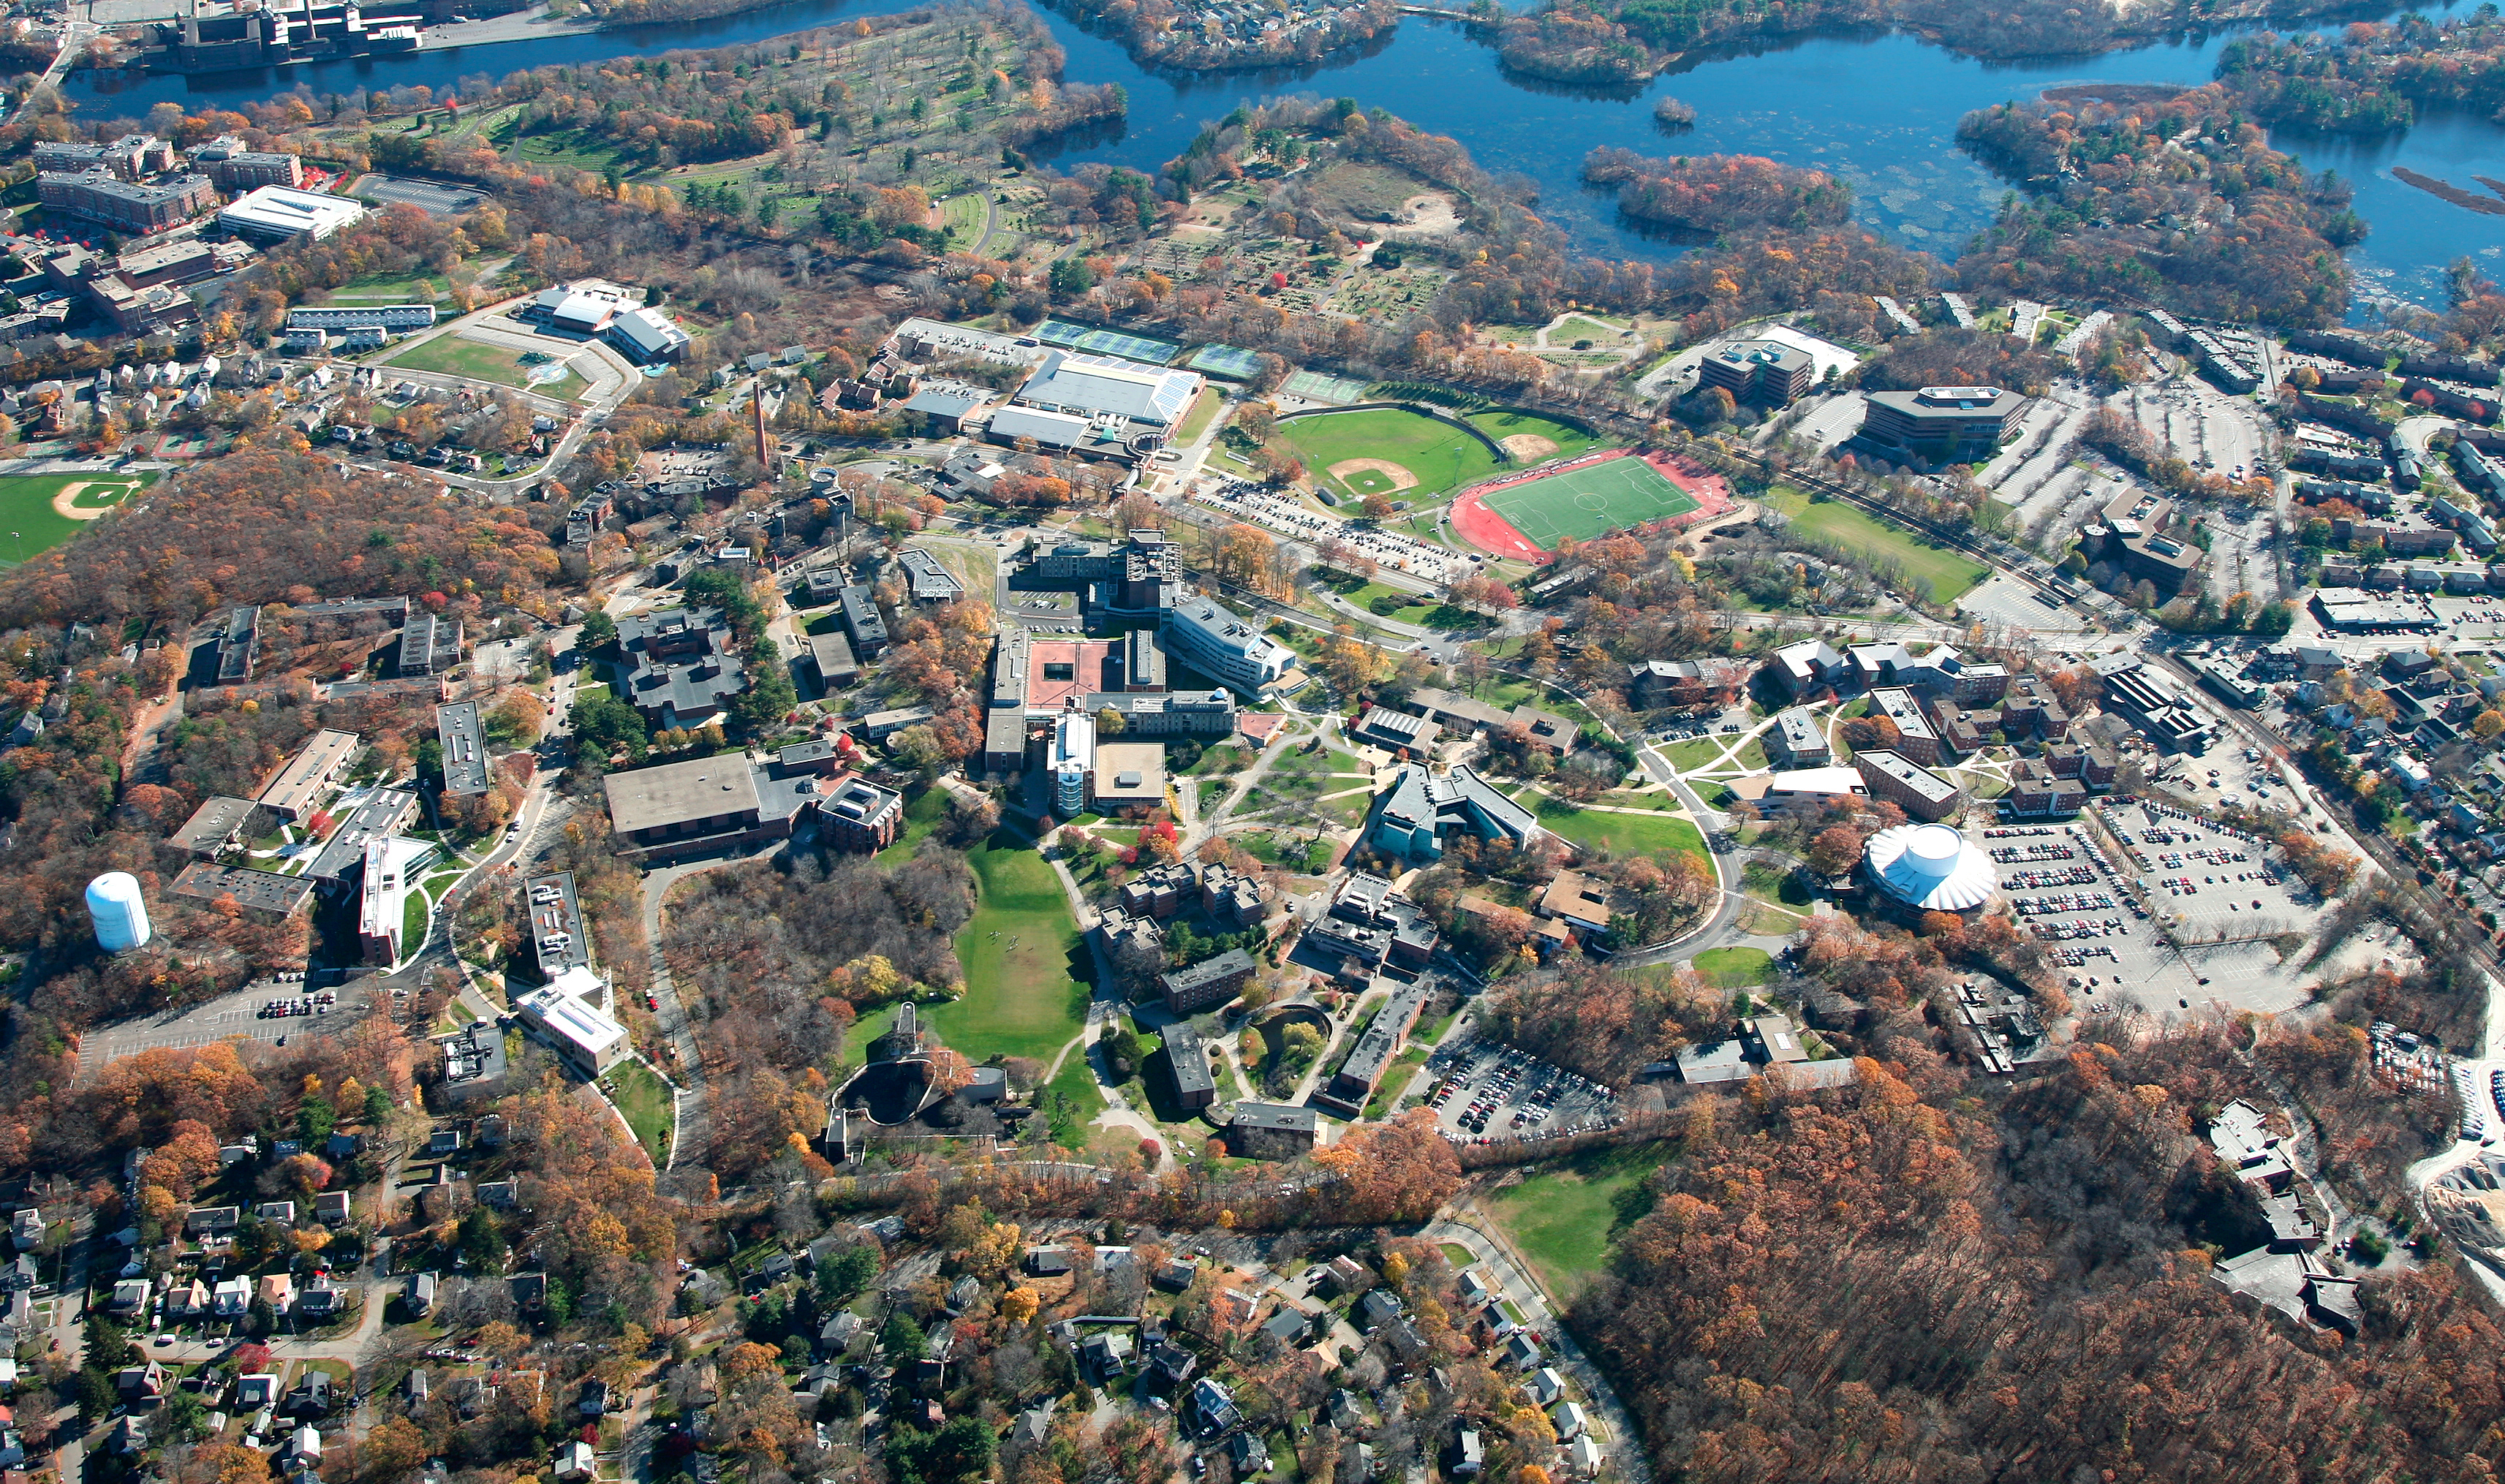 Aerial view of the Brandeis Campus. Photo by Joseph Melanson.